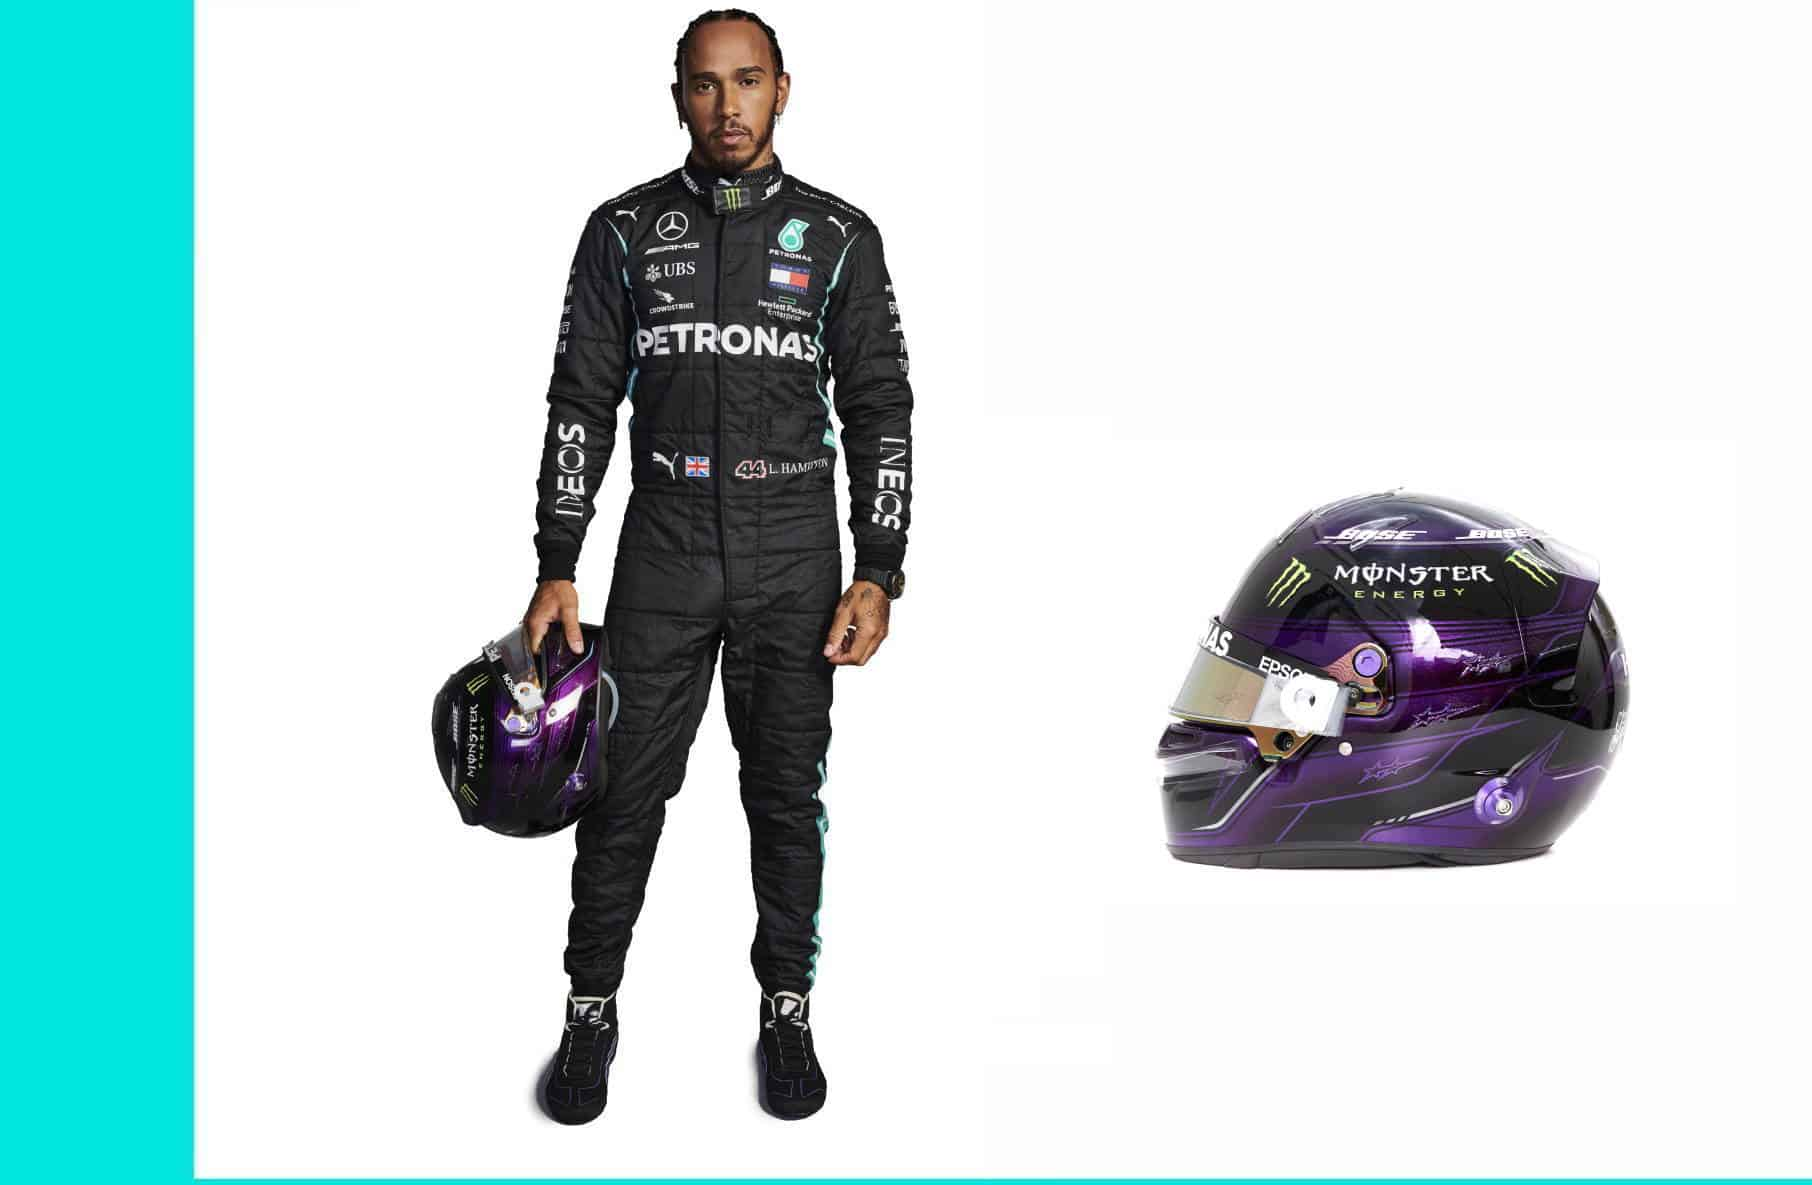 Lewis Hamilton F1 2020 Profile Photo Daimler Edited by MAXF1net